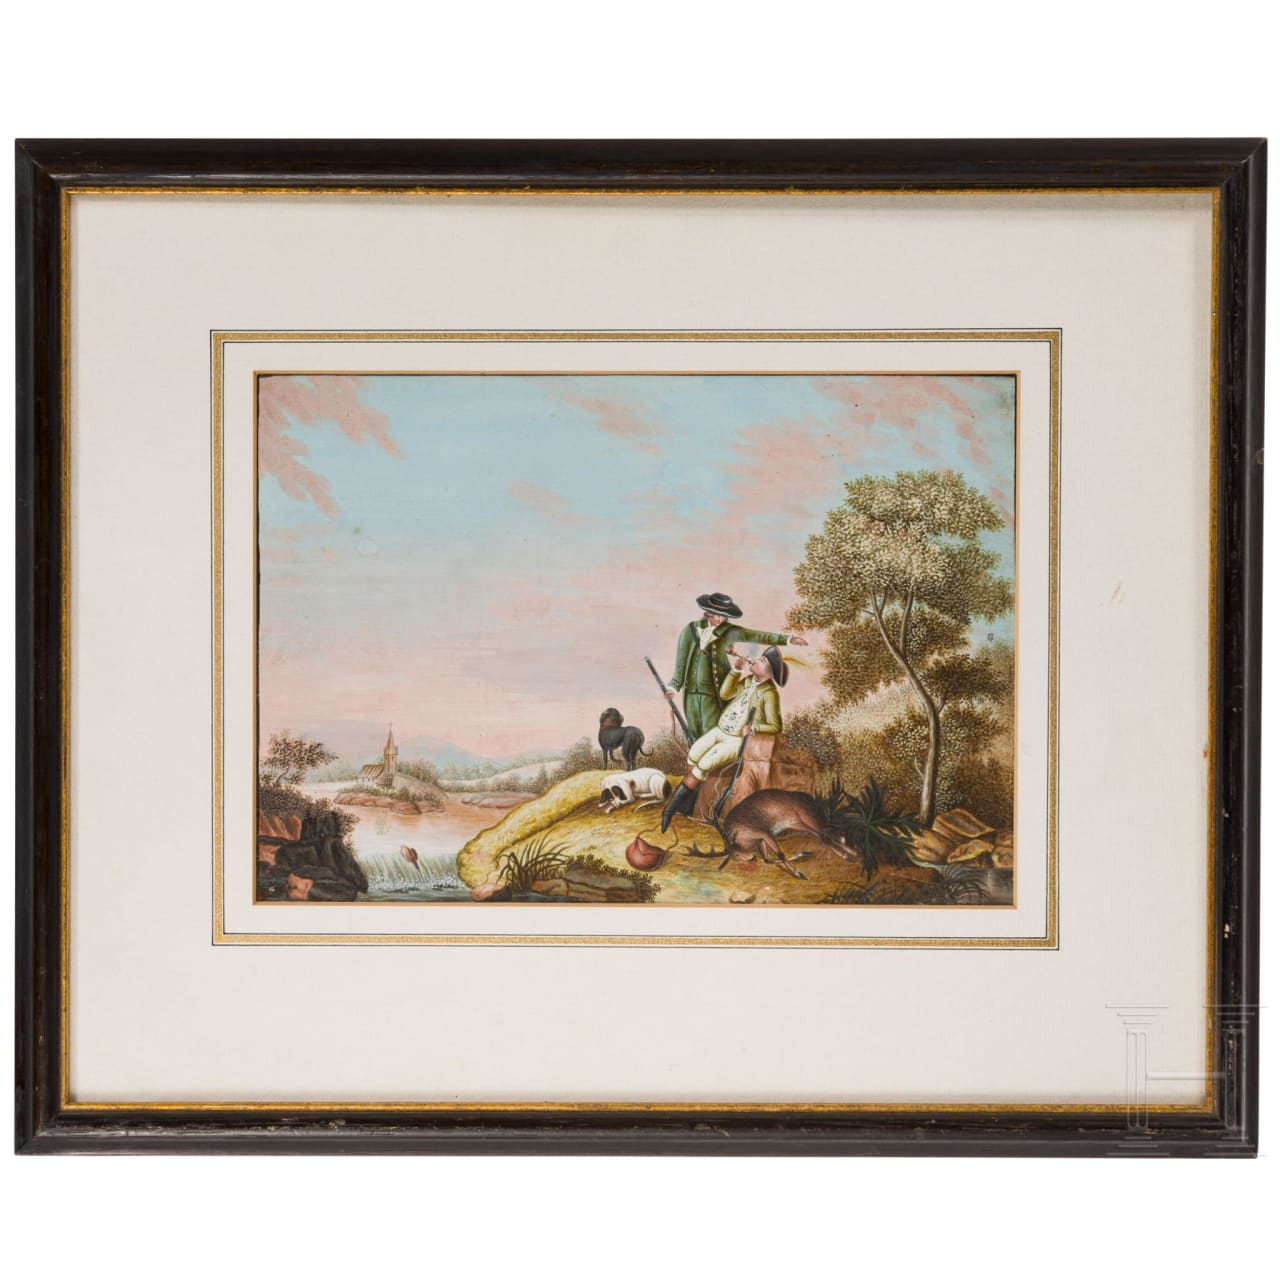 A fine South German gouache with a hunting motif, circa 1800